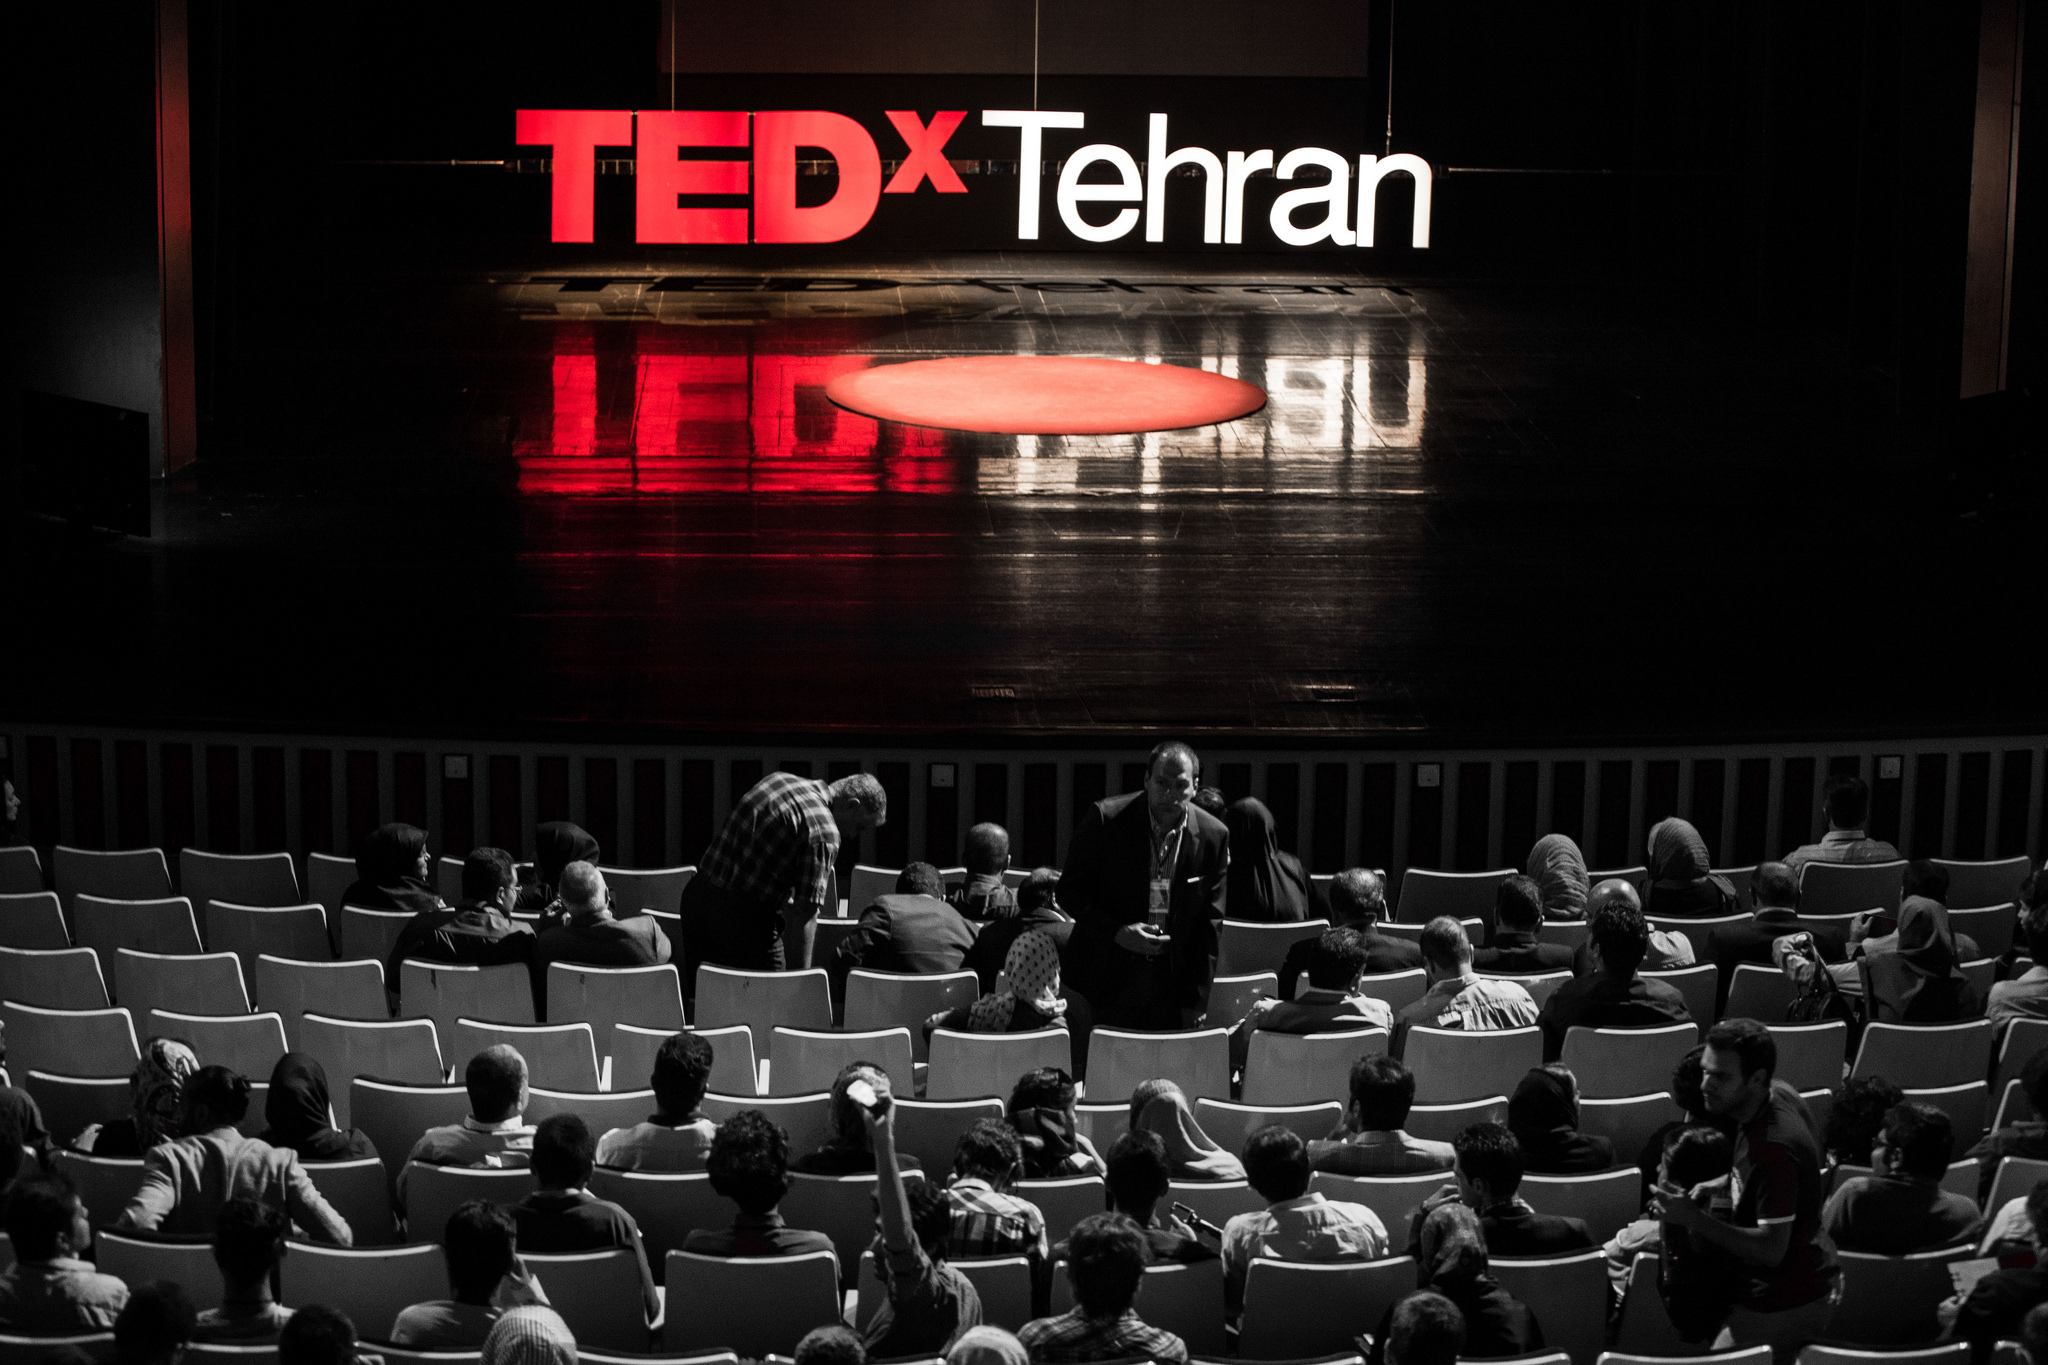 The audience at TEDxTehran finds its seats. Photo: Ali Taheri